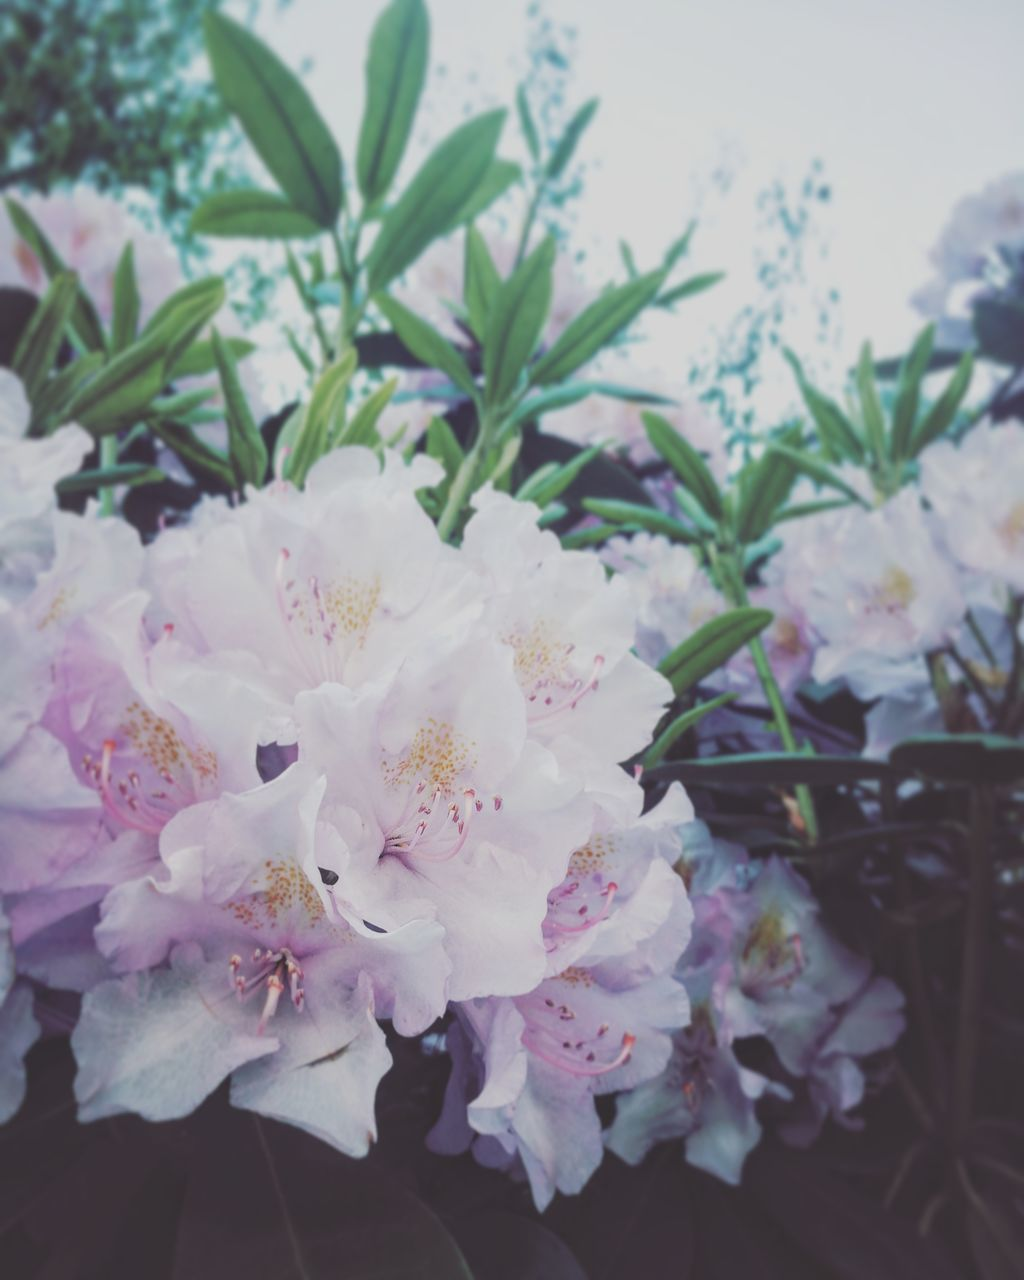 flower, growth, blossom, beauty in nature, no people, nature, fragility, close-up, freshness, outdoors, tree, day